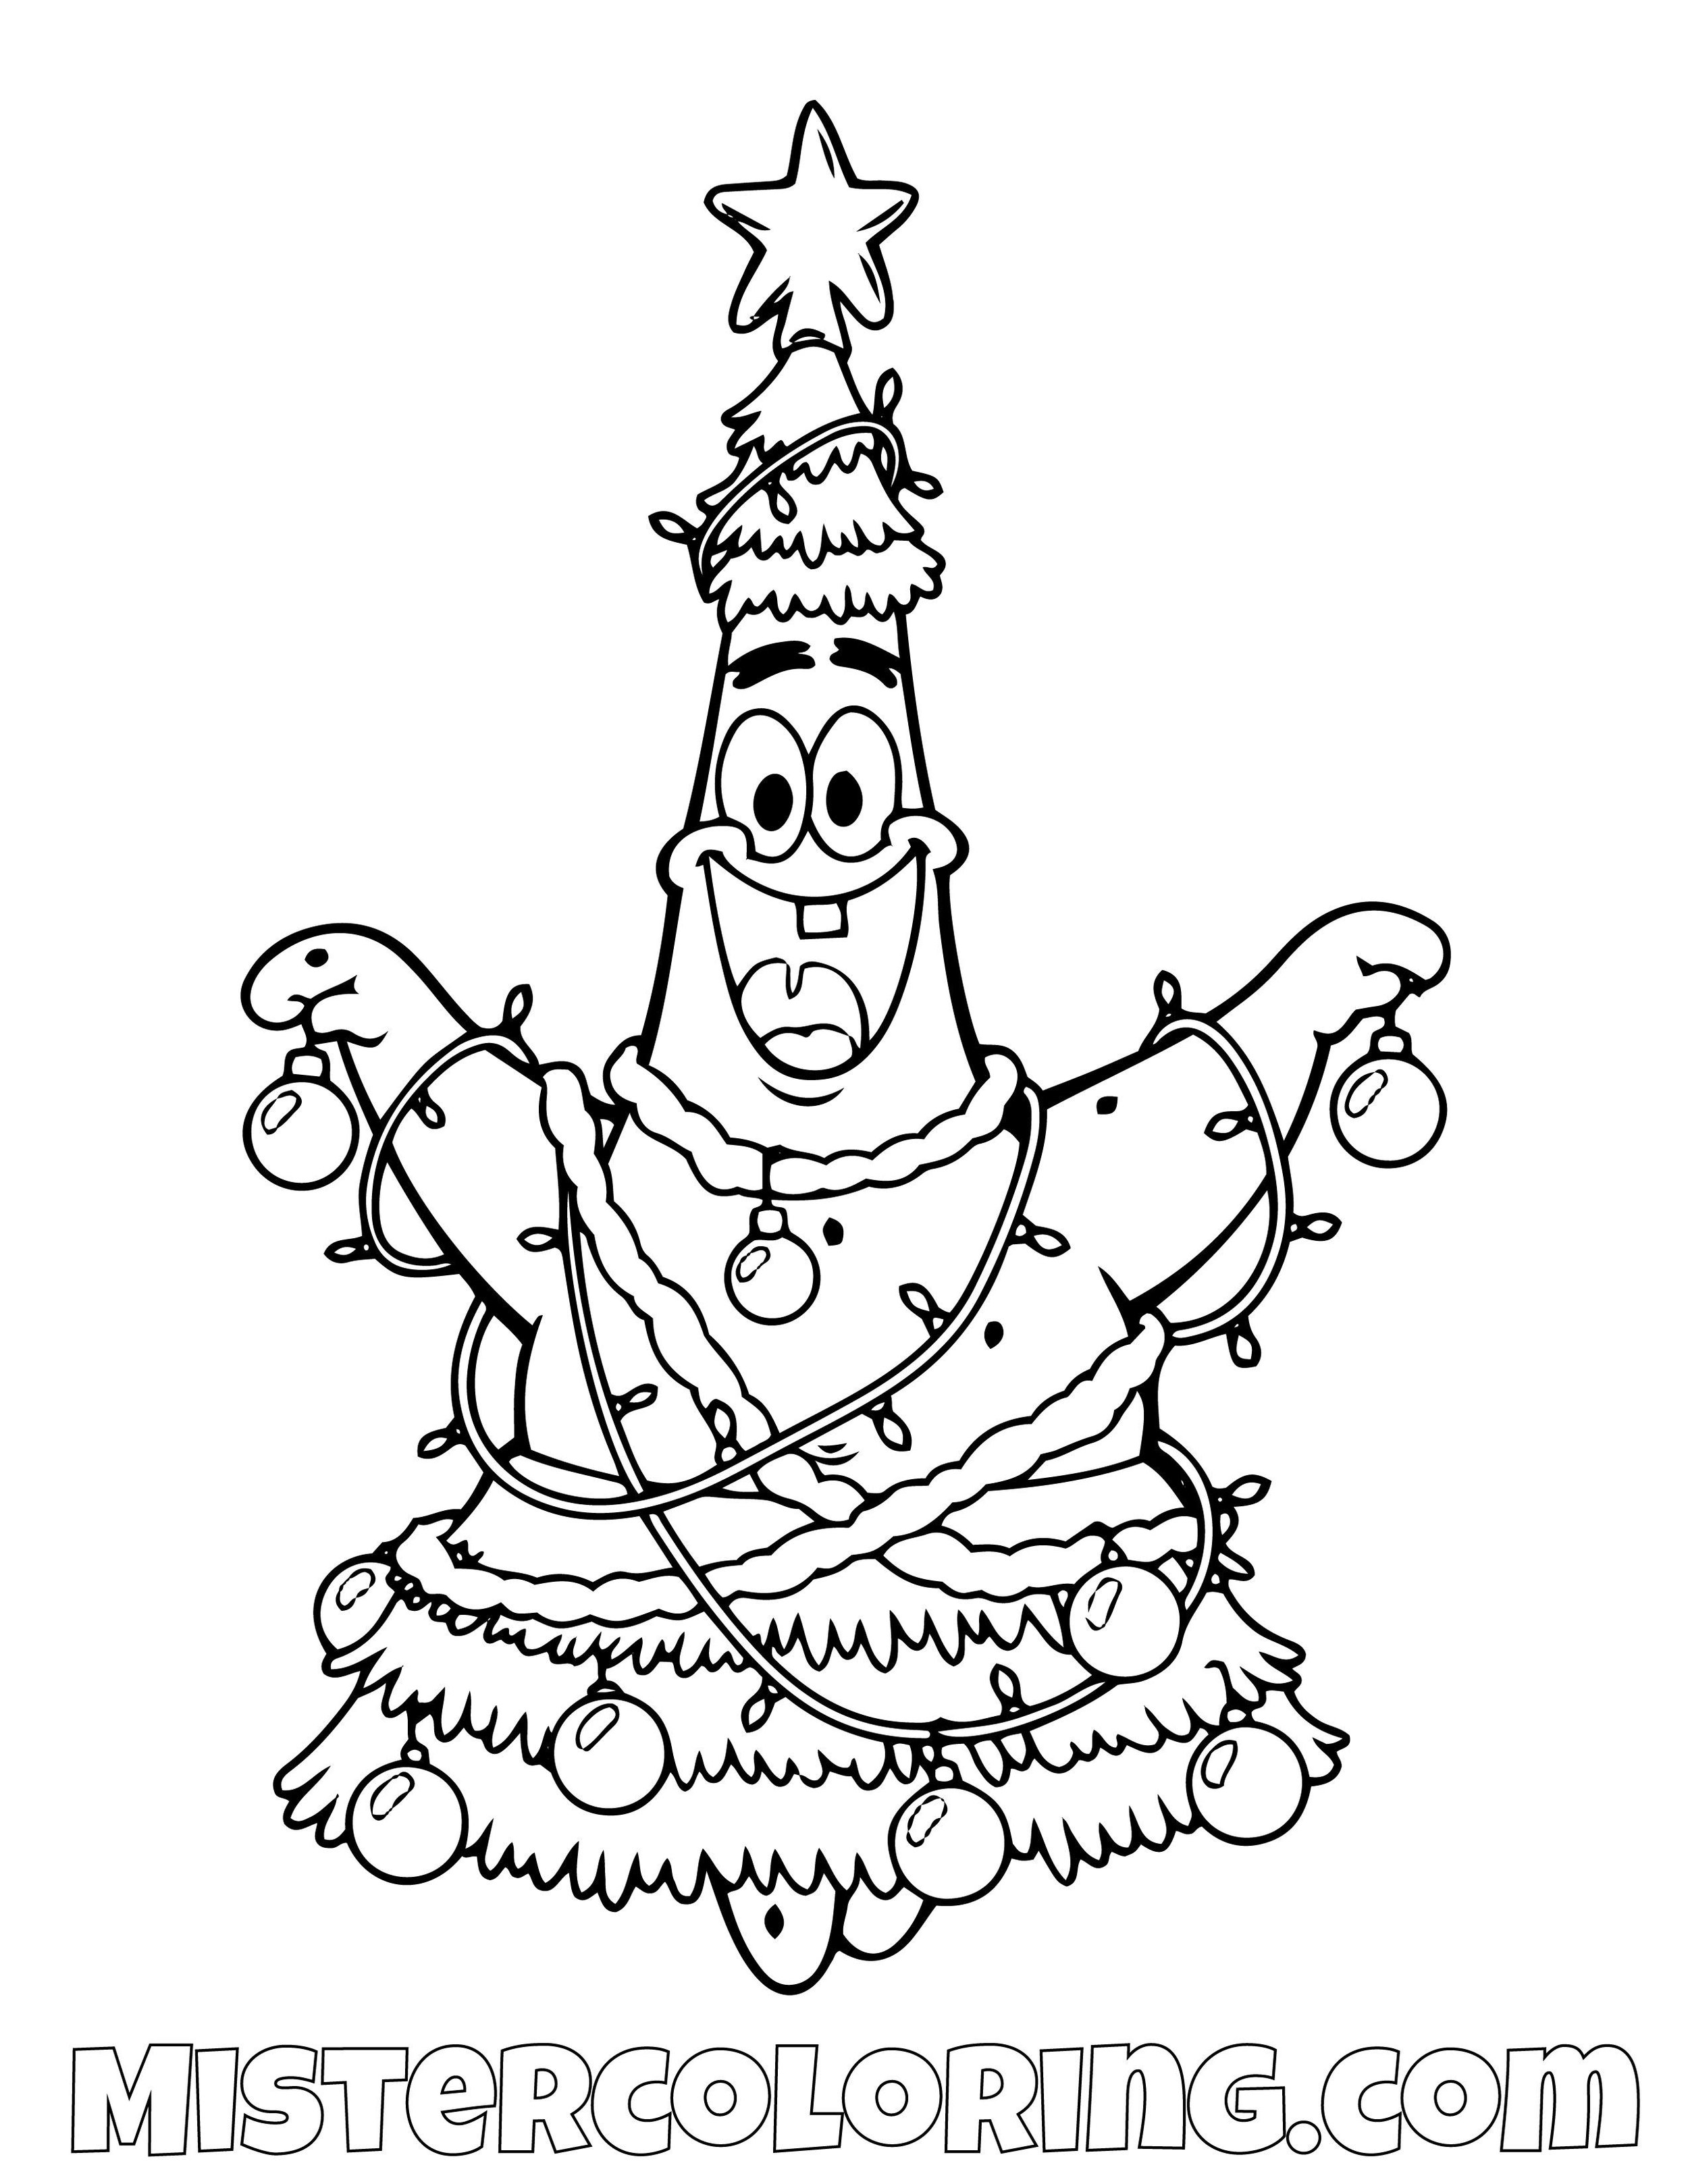 Spongebob Squarepants Coloring Pages For Kids — Mister Coloring